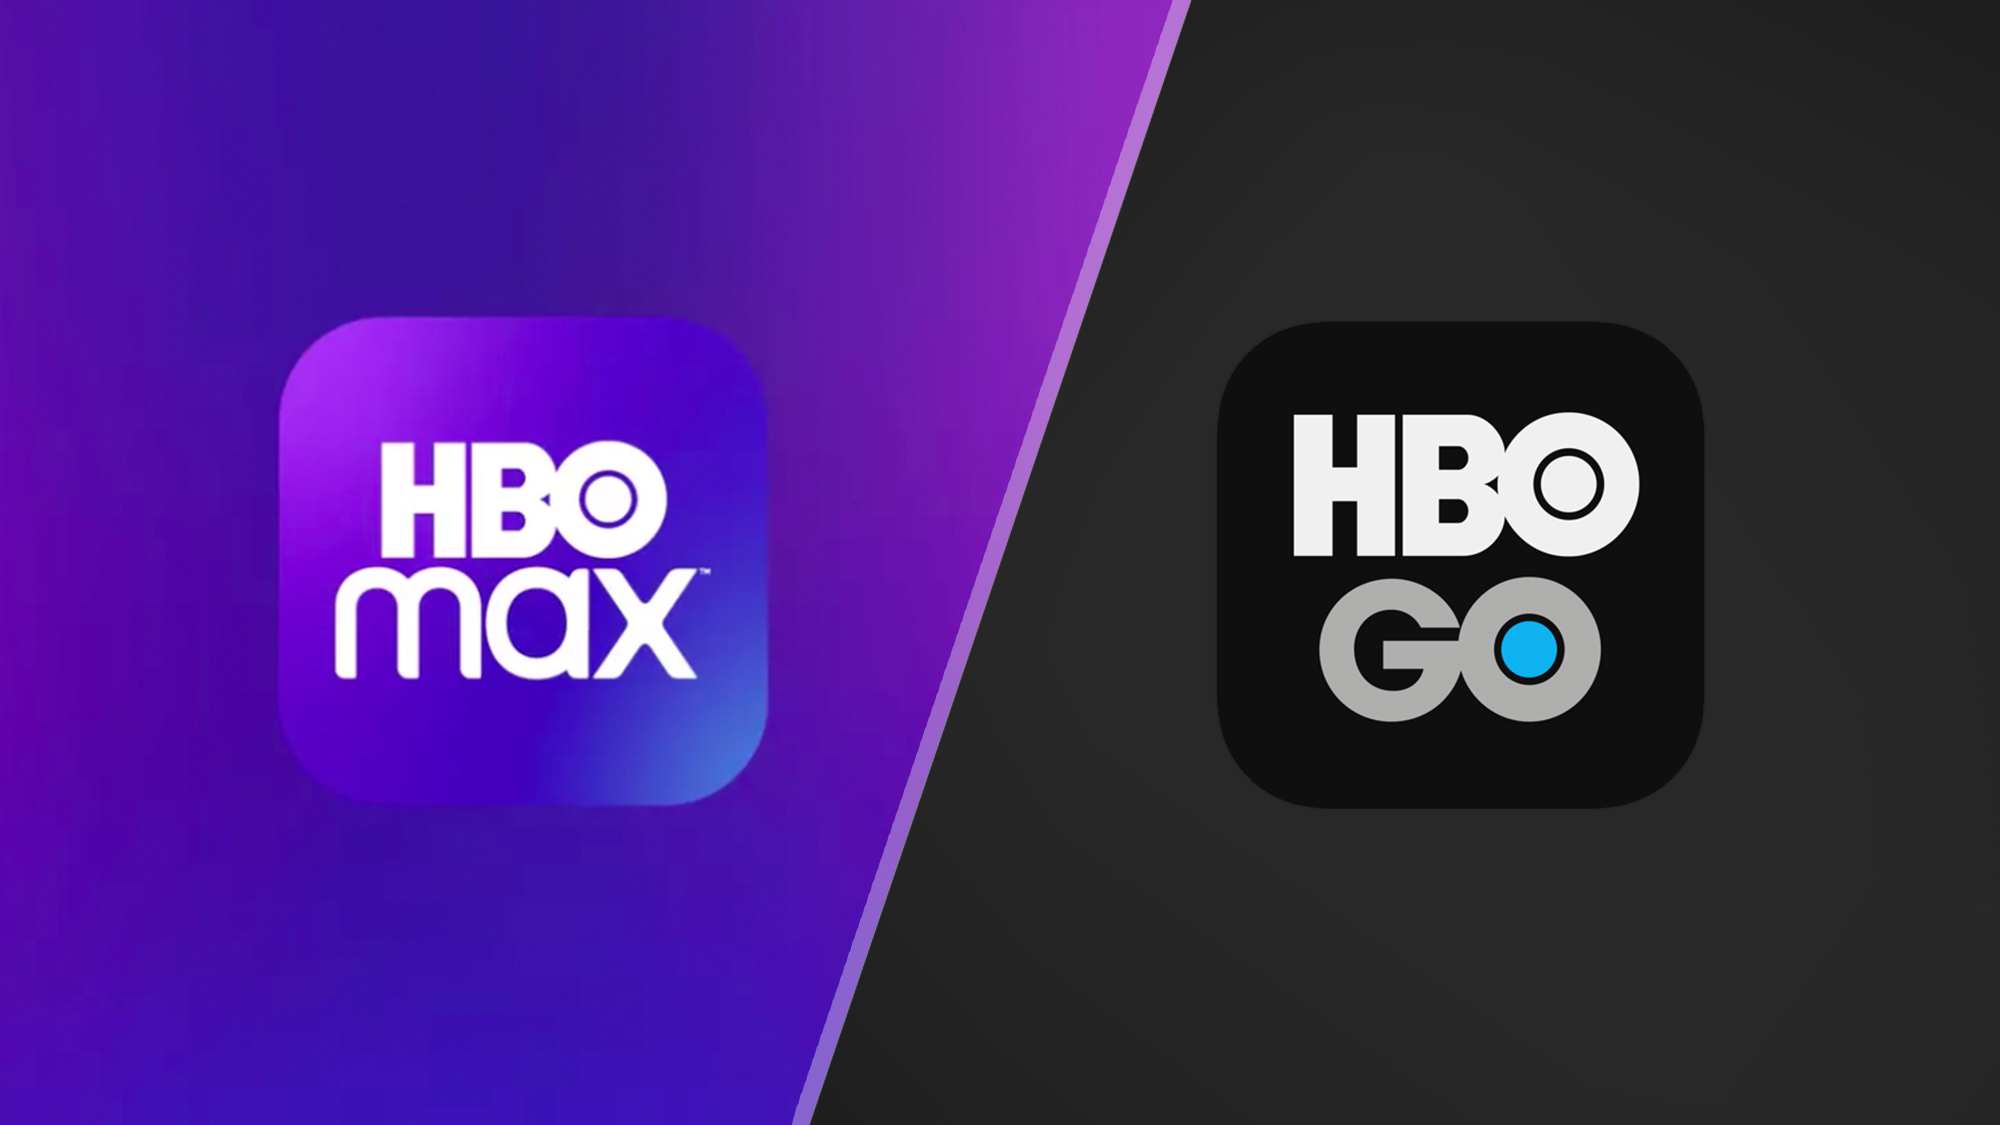 Free HBO GO Account Hack Image